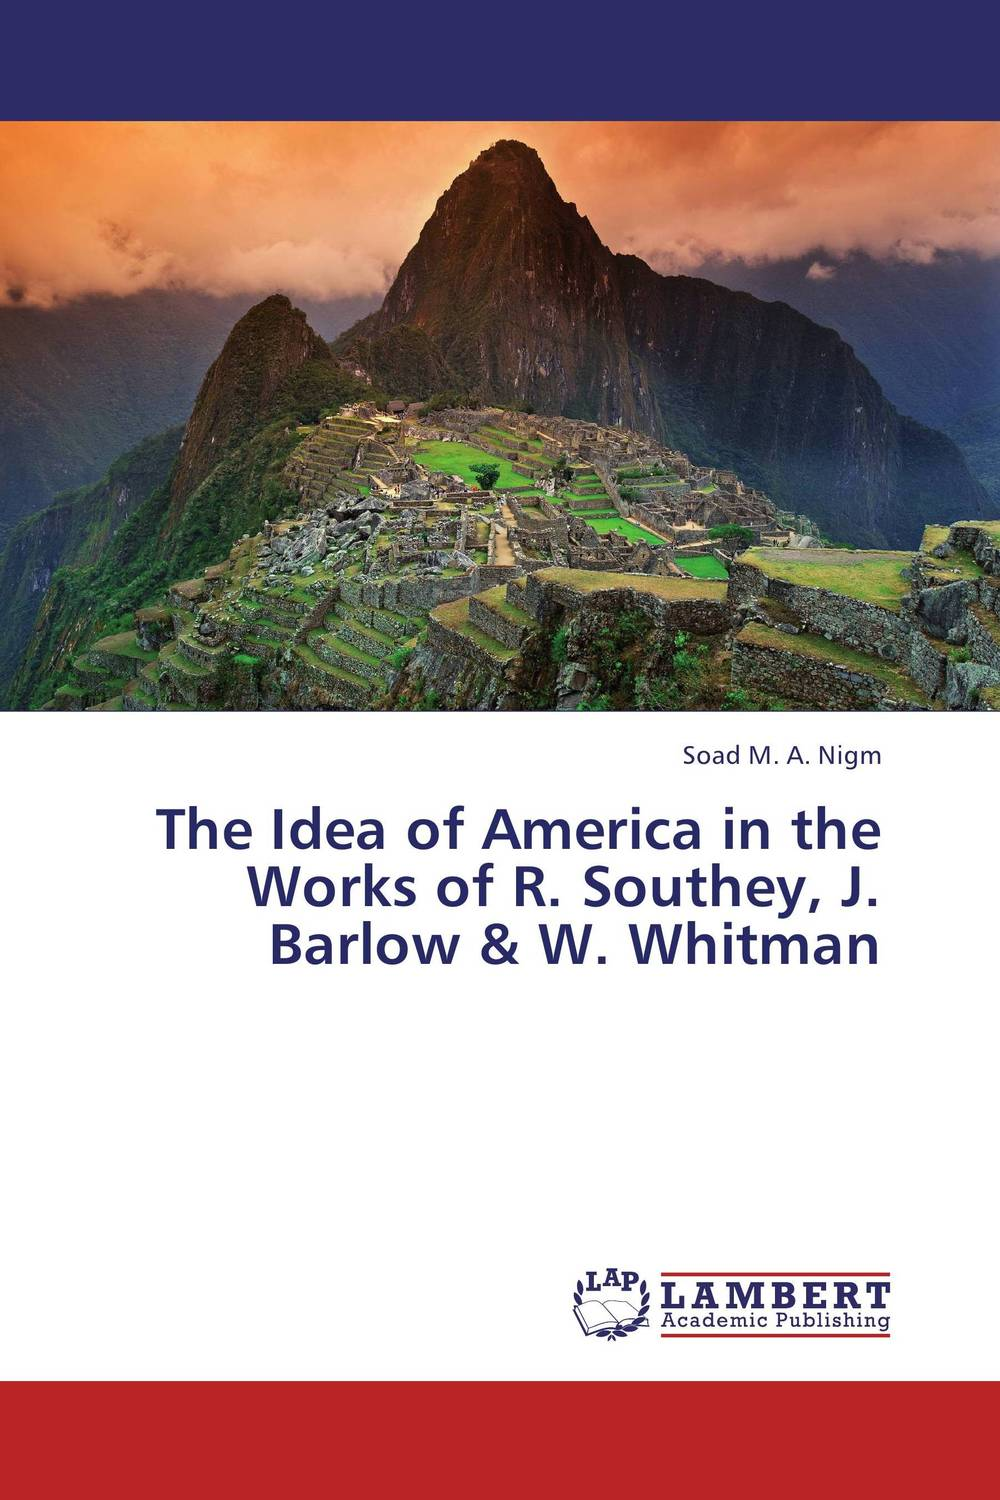 The Idea of America in the Works of R. Southey, J. Barlow & W. Whitman the identity of the i of the confessions of jeremiah